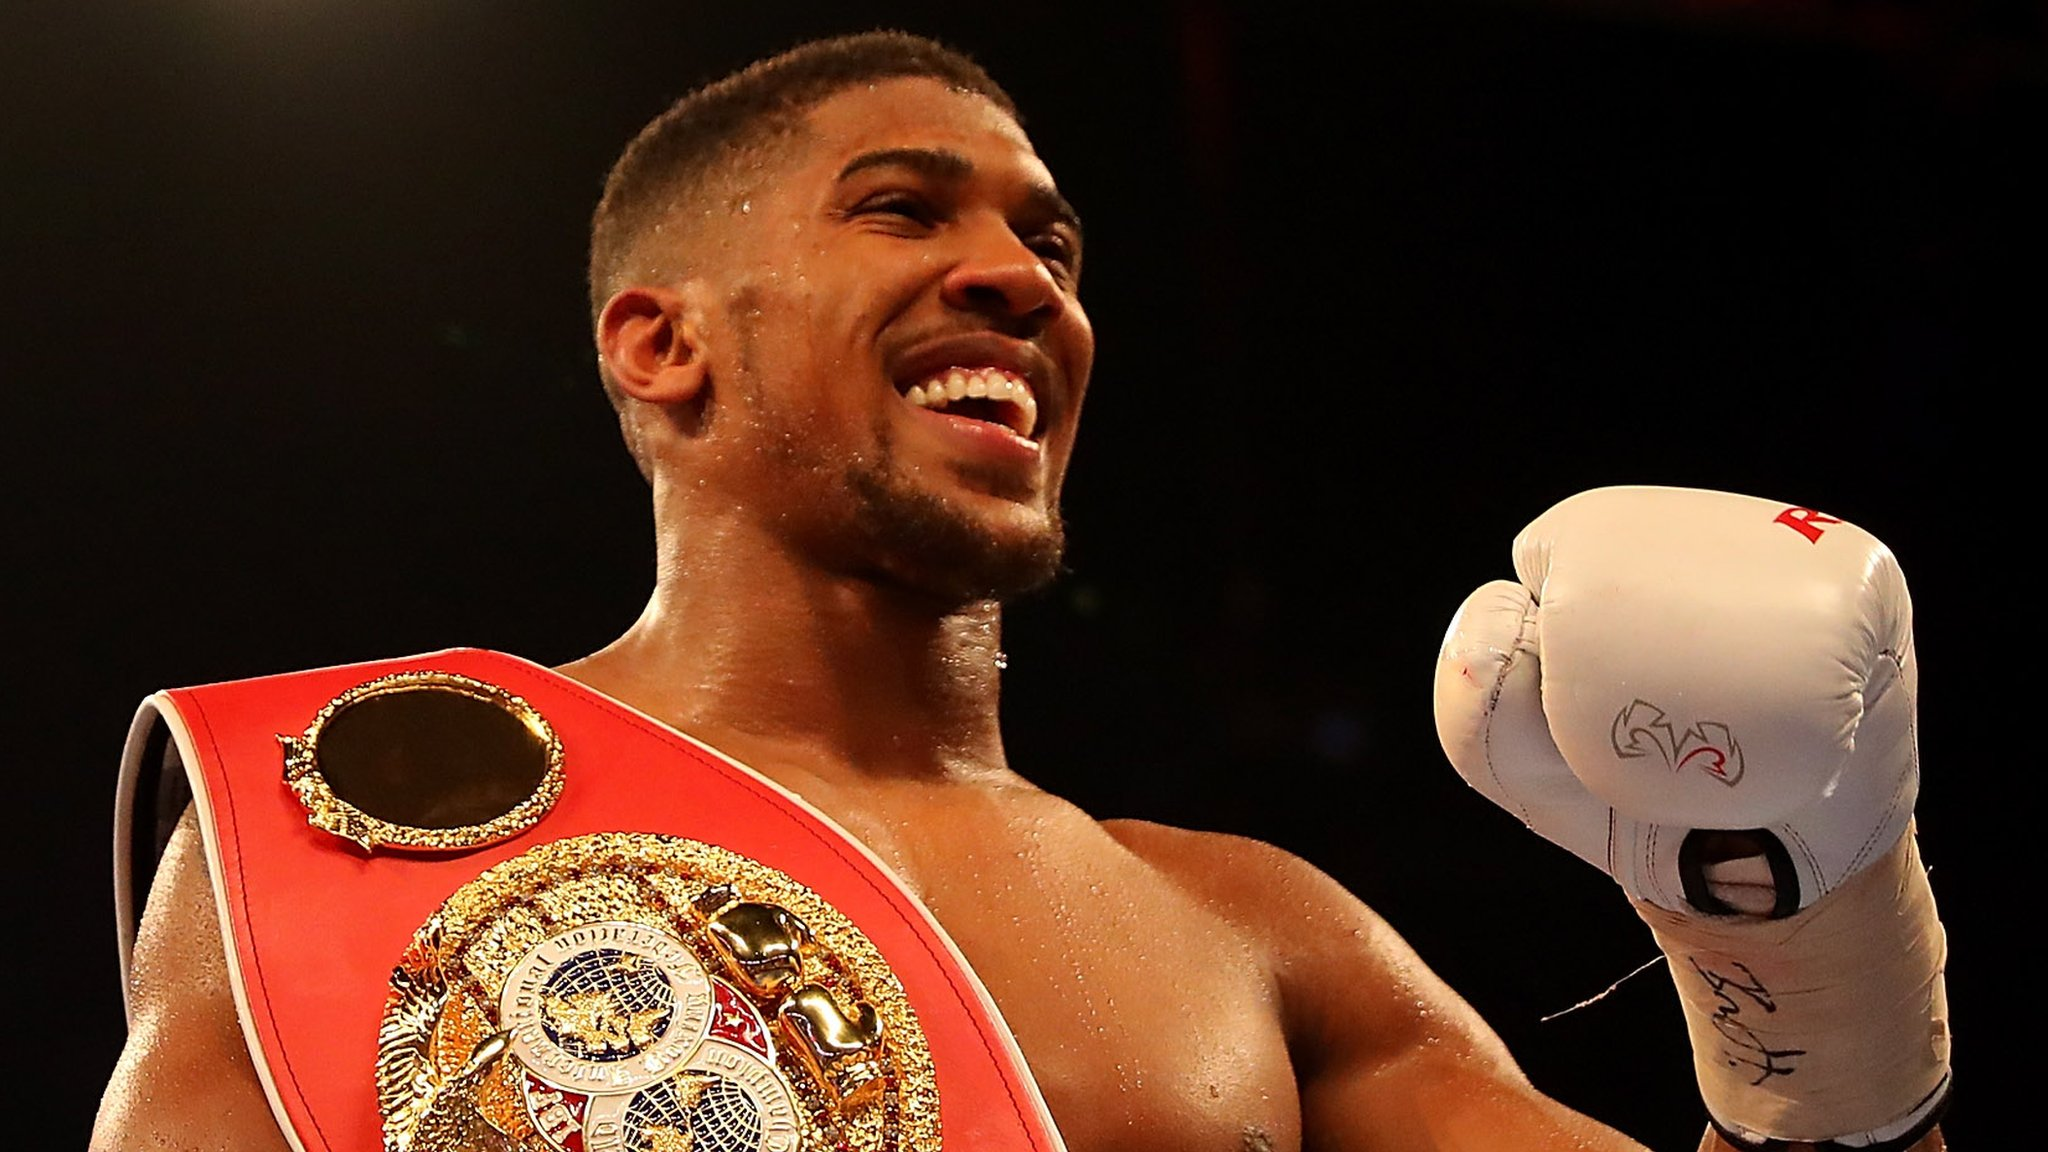 Joshua knocks out Breazeale in seventh to retain IBF heavyweight title